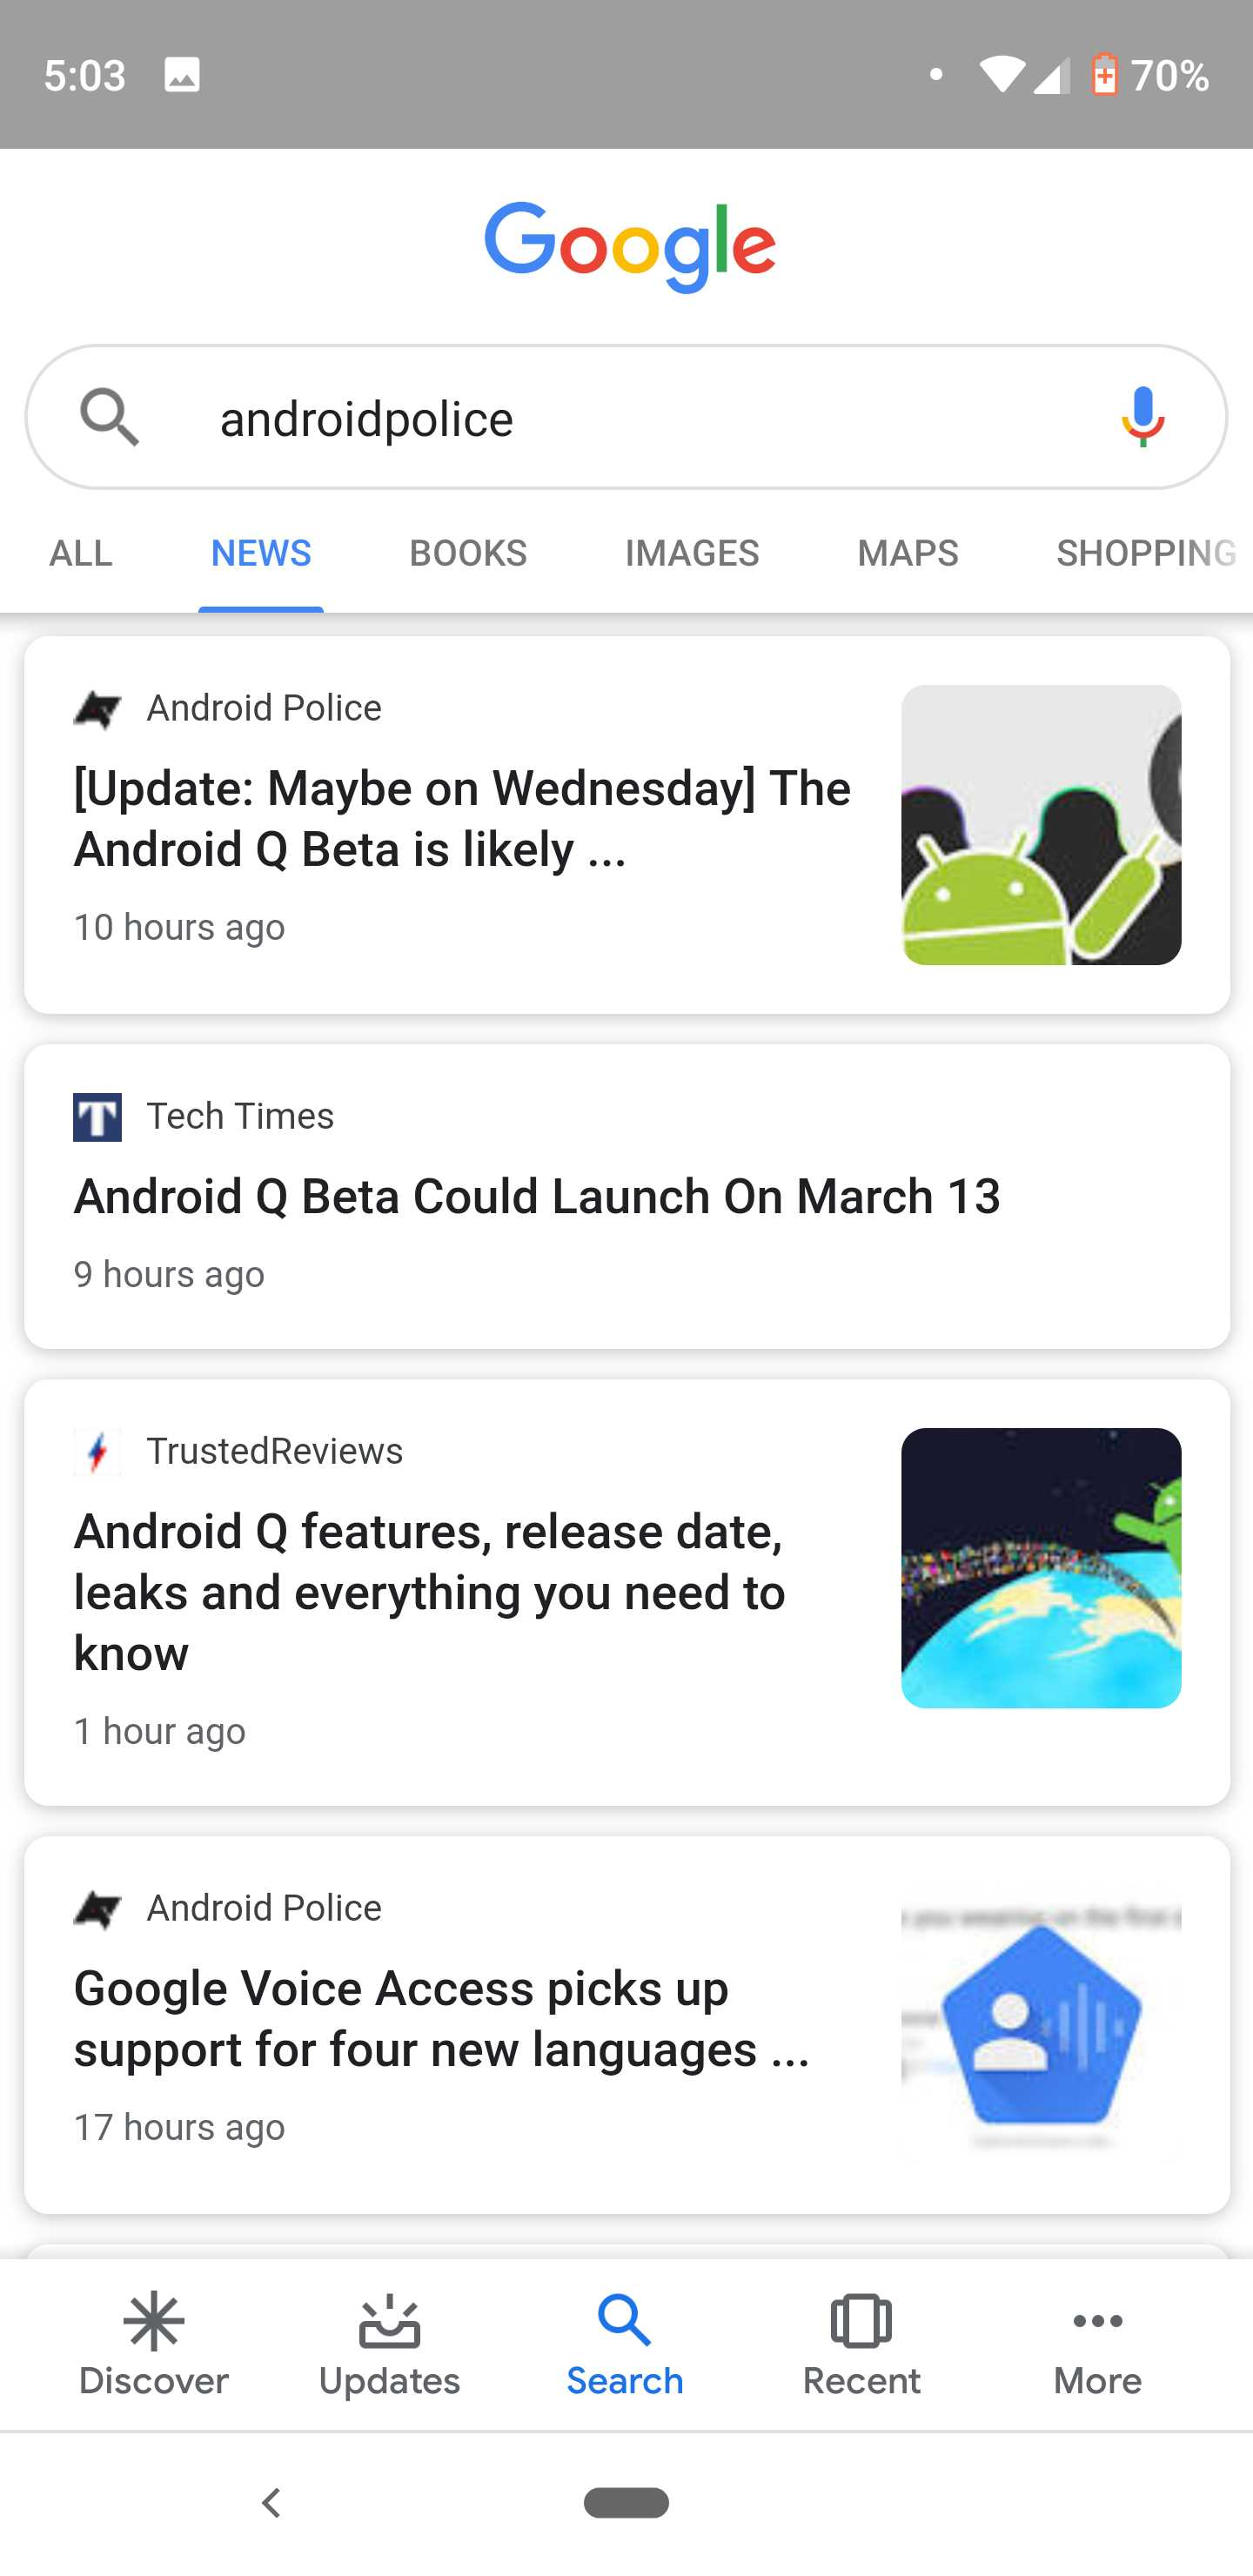 Google Search news results get a Material Design refresh